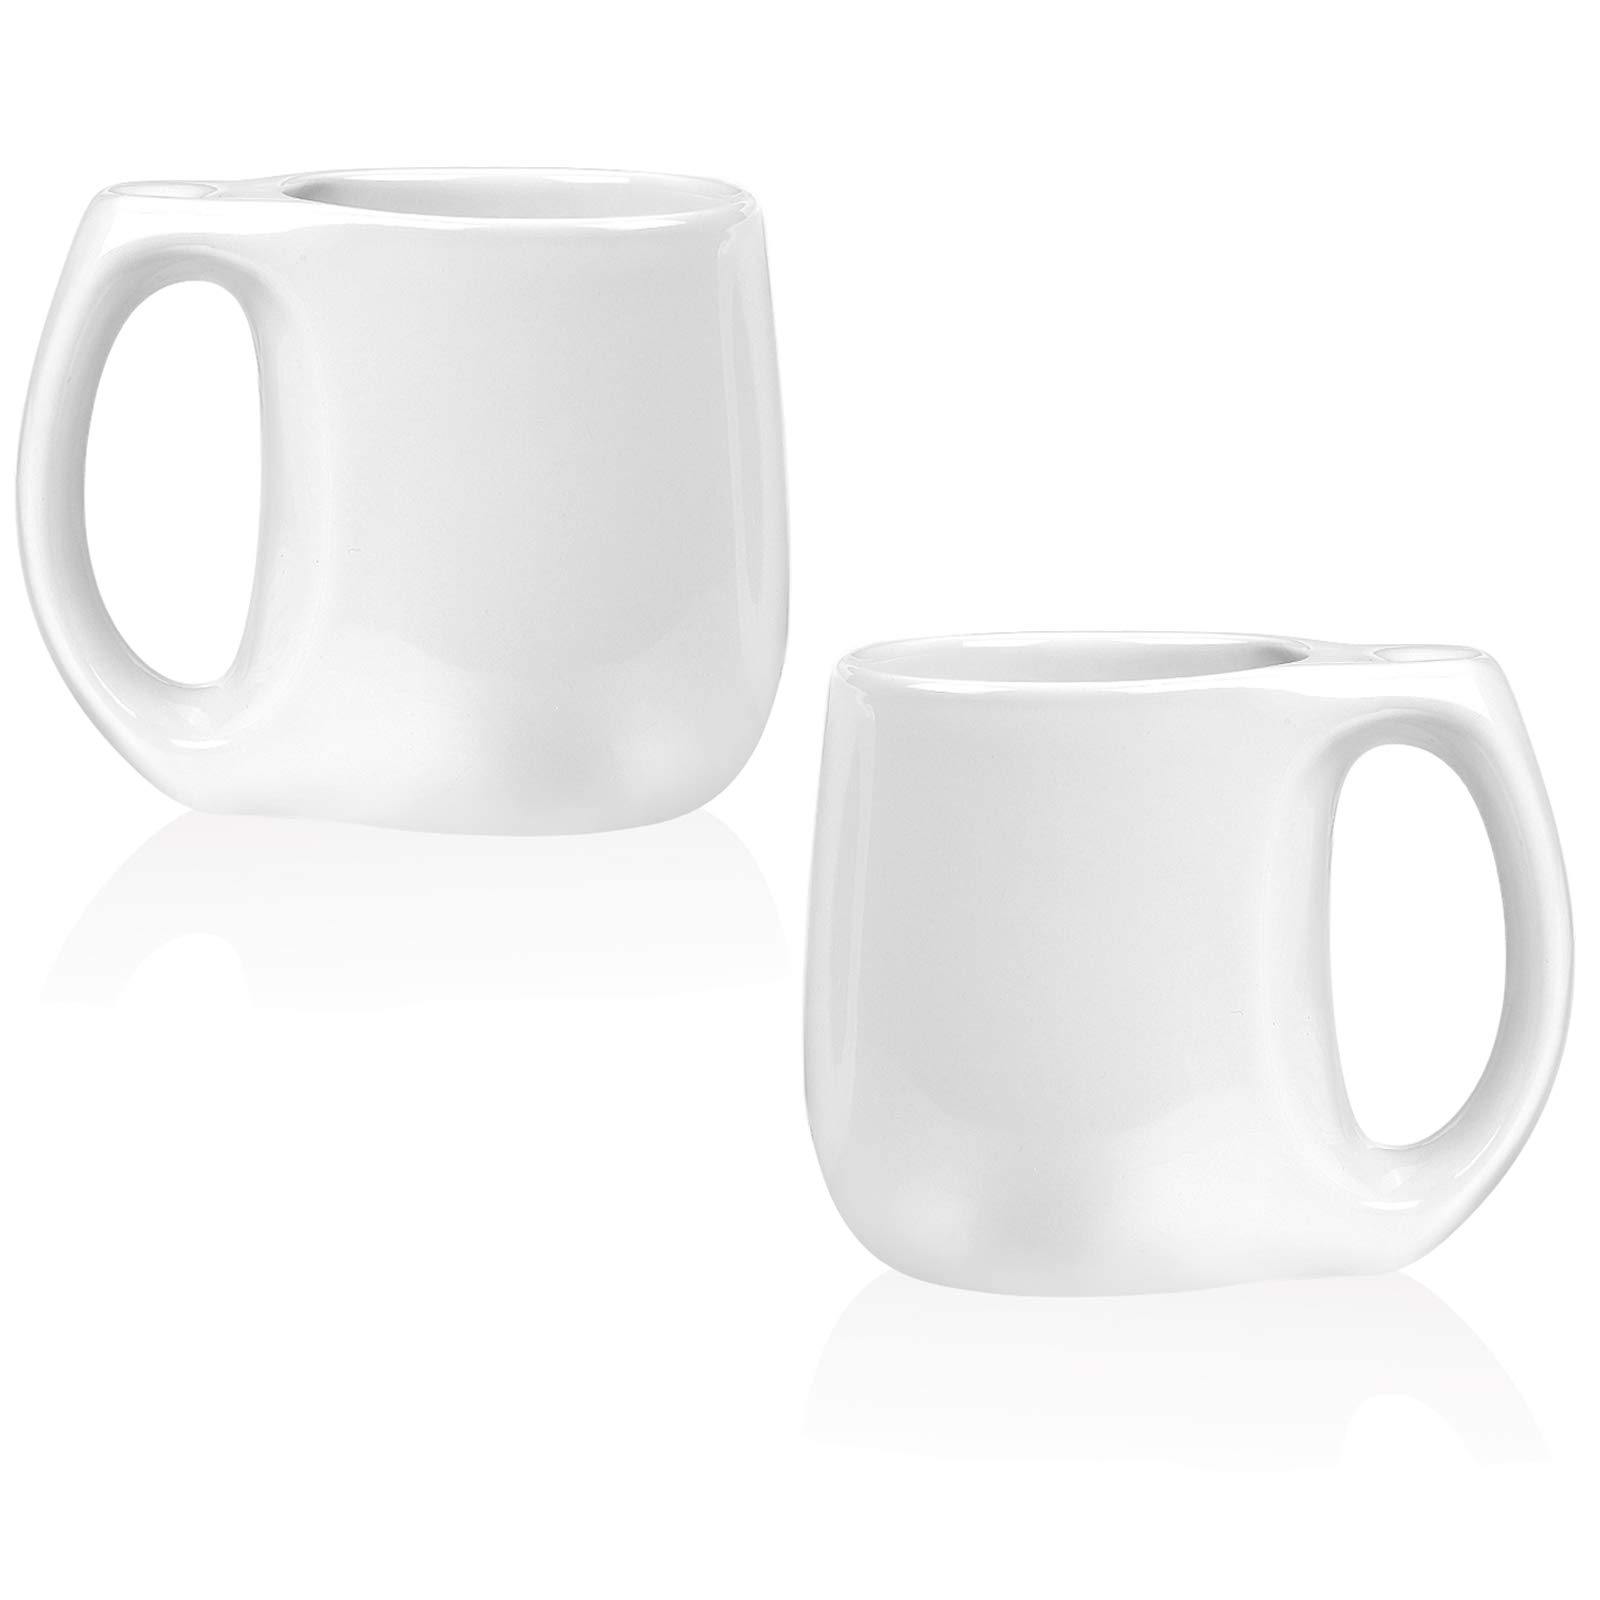 16OZ Porcelain Mugs,set of 2 Coffee Mugs,White